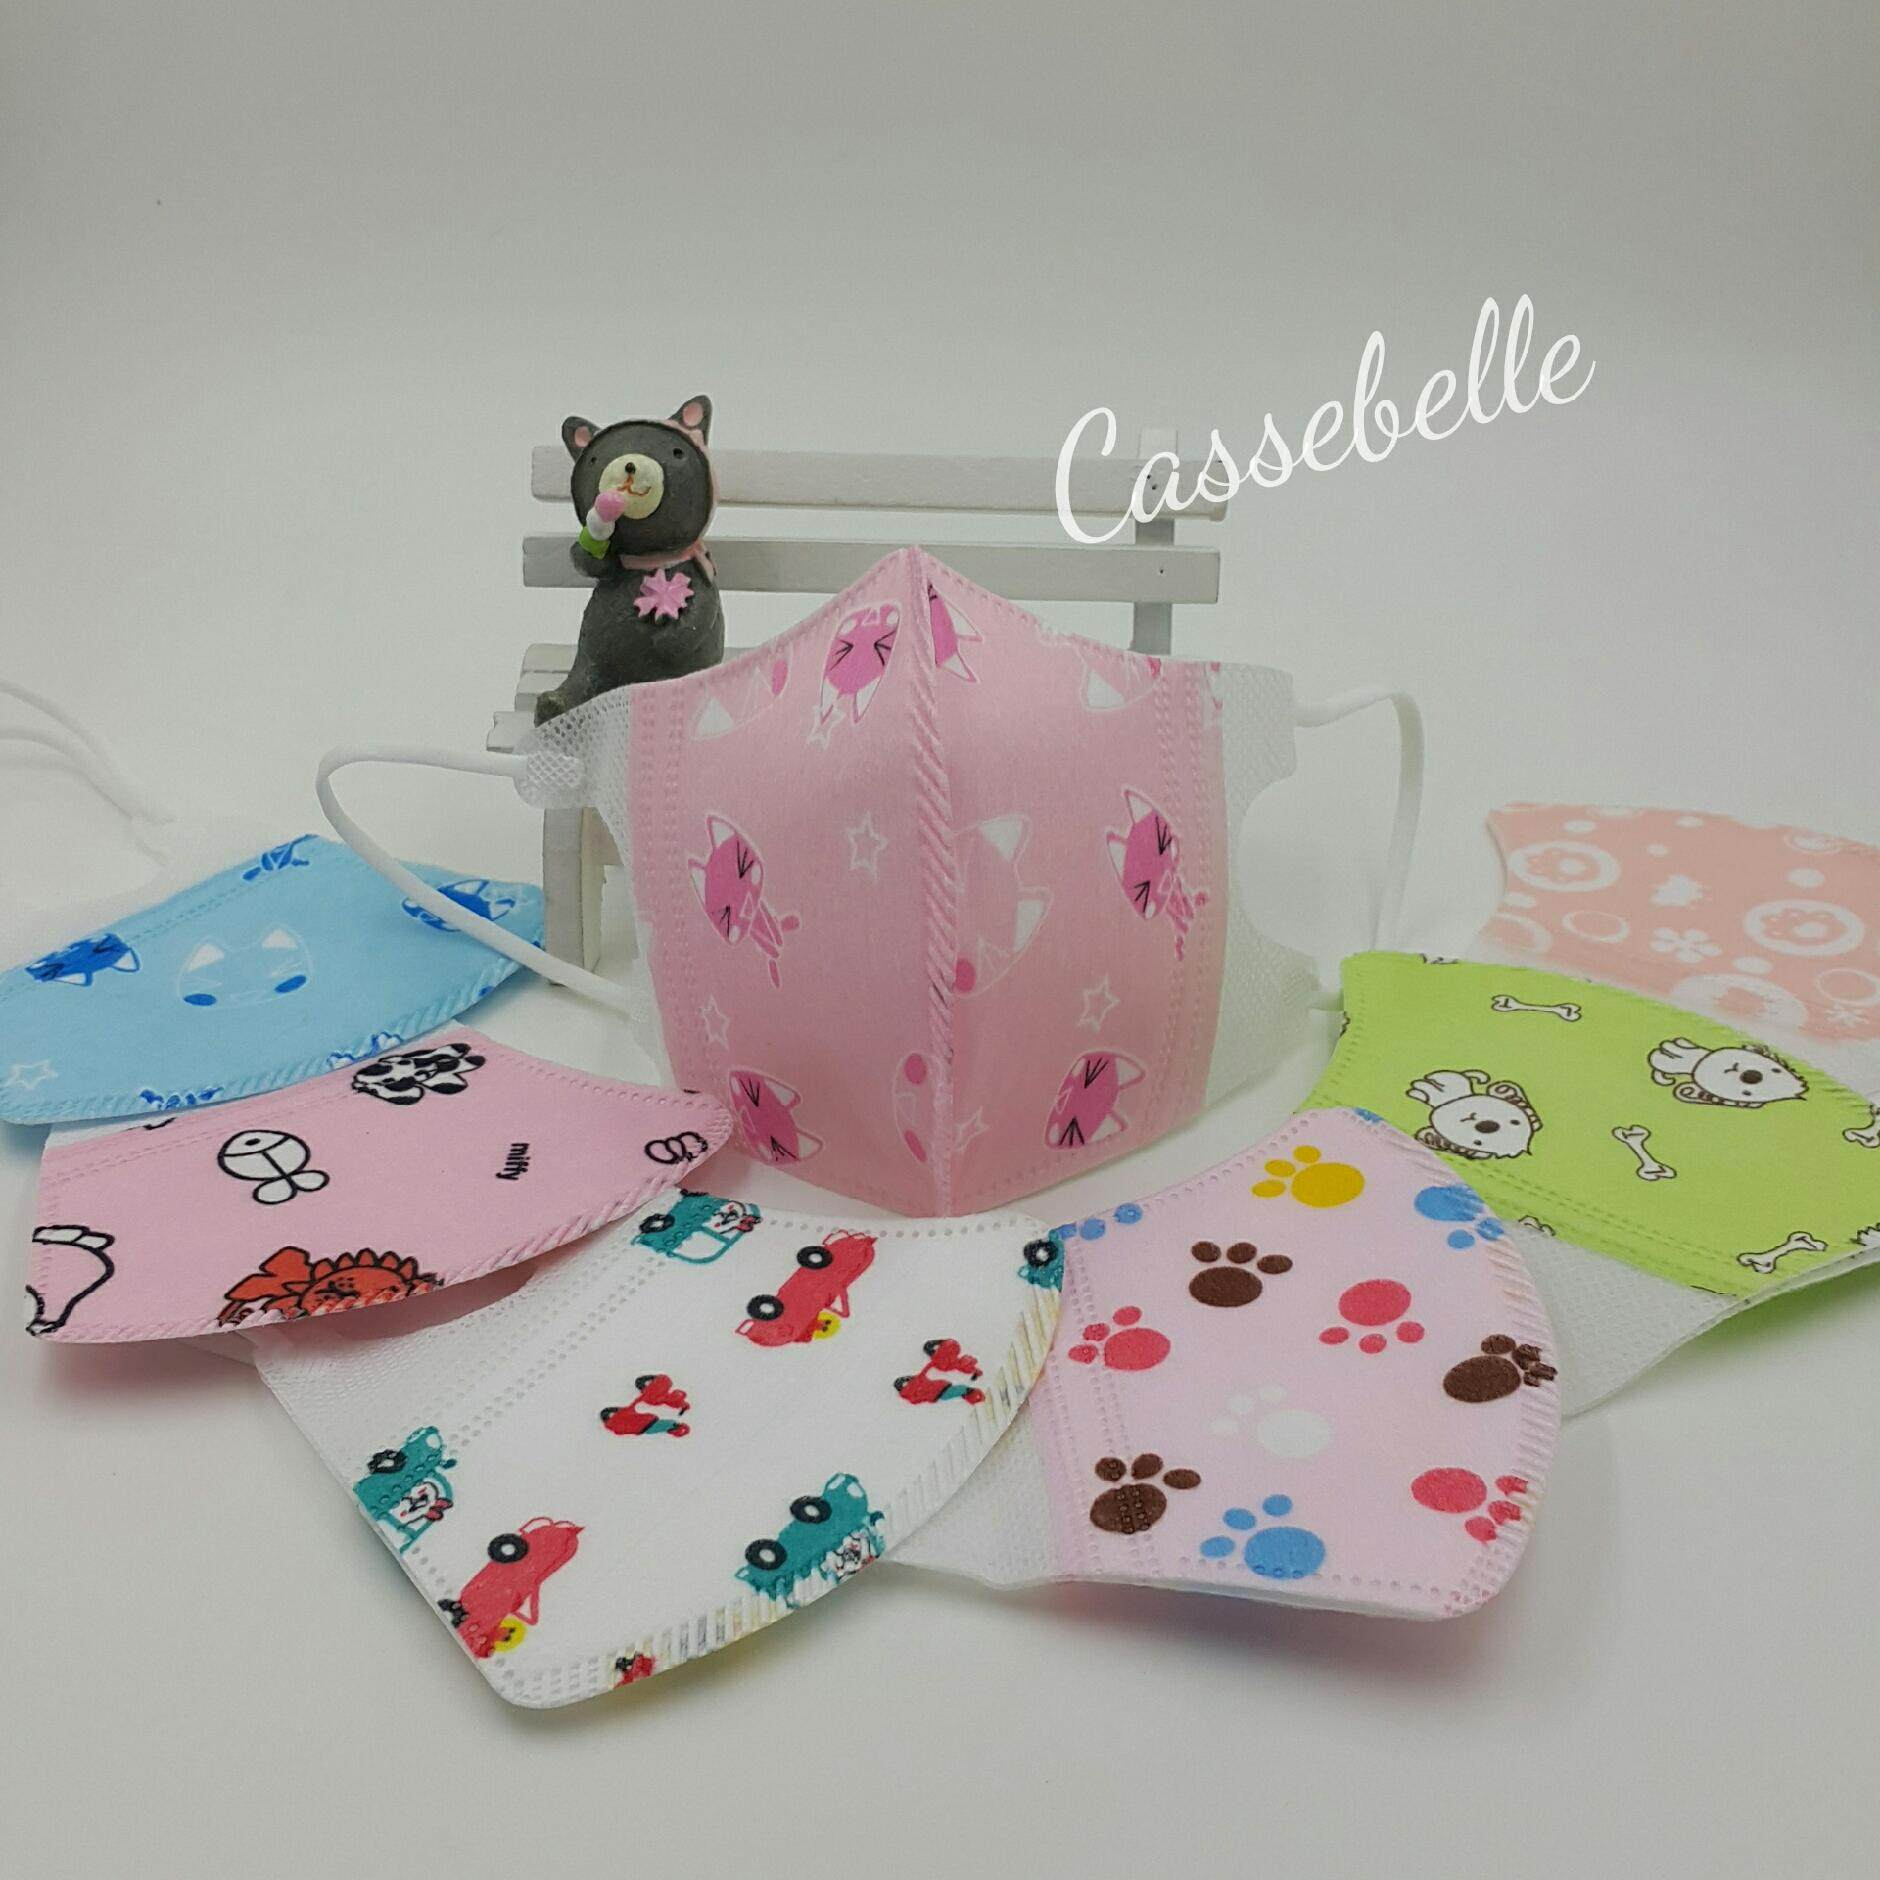 [FOR 0-3 YEARS OLD] 3-Ply Disposable 3D Folded Face Mask for Children/Kids, 5pcs/Pack, Ear Loop, Cute Cartoon Printing Design